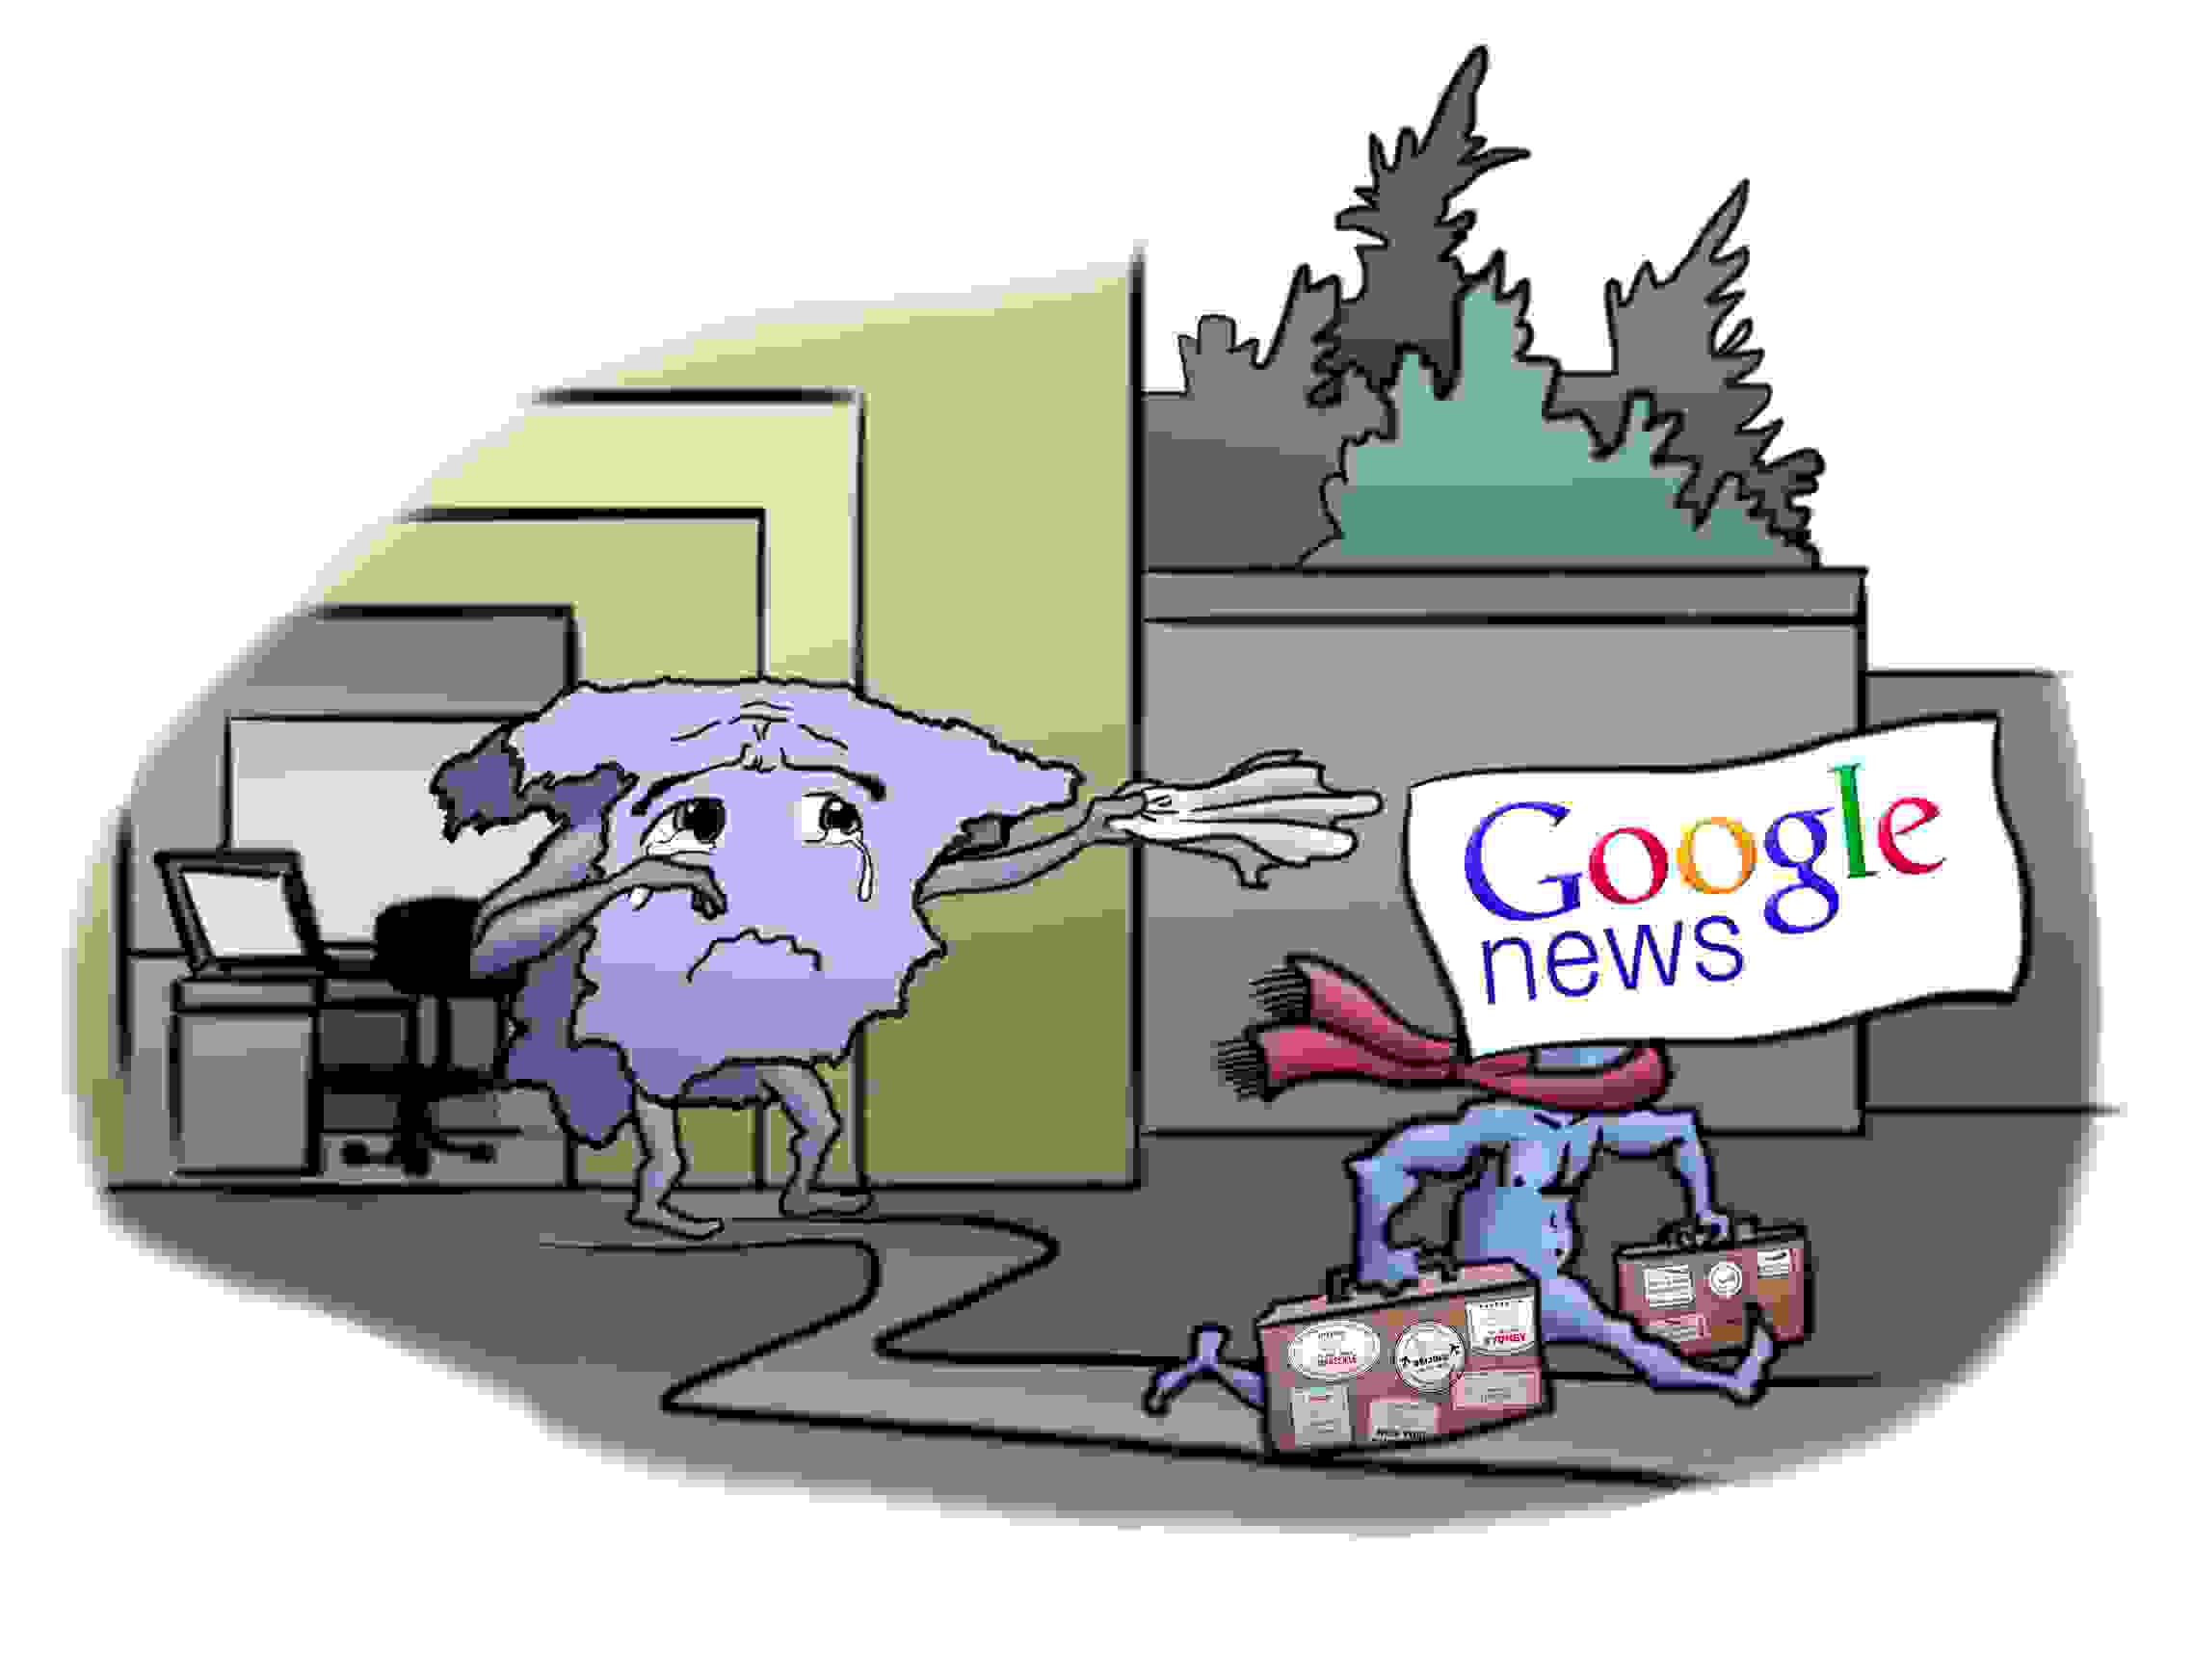 google news1 mini compressed